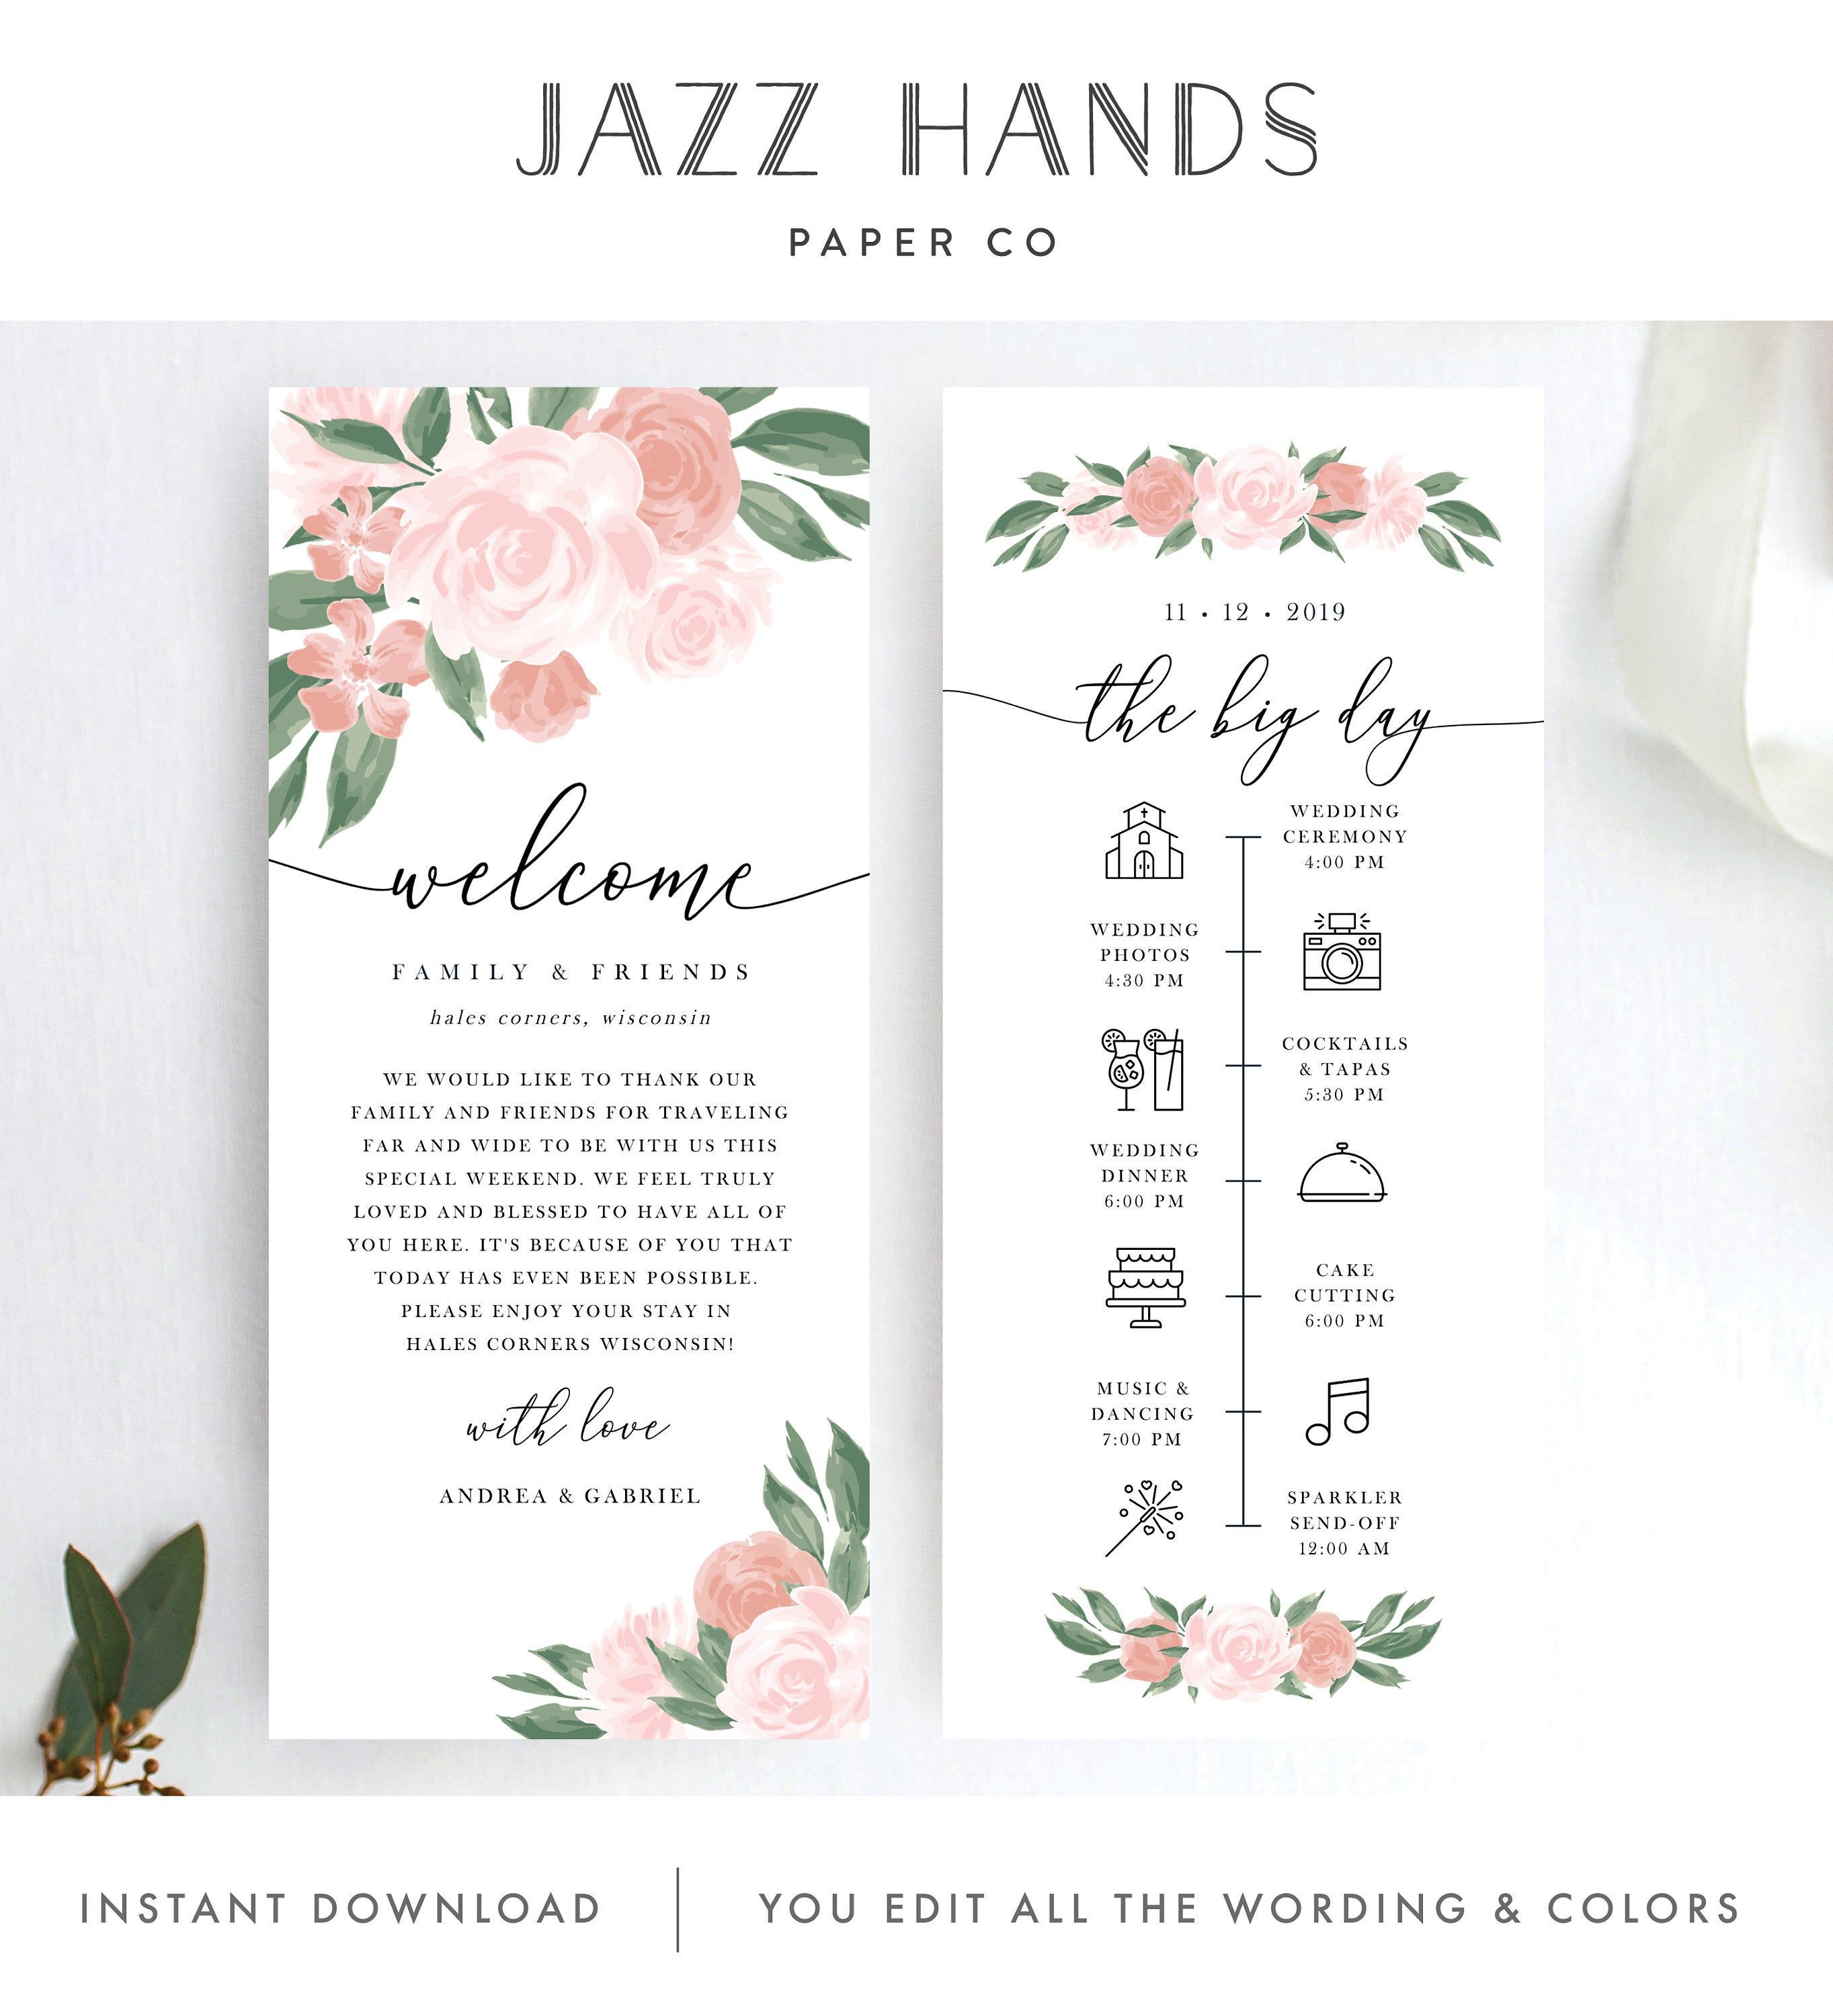 Wedding Itinerary Template Pink And Coral Floral Design Etsy In 2020 Wedding Itinerary Template Wedding Itinerary Itinerary Template